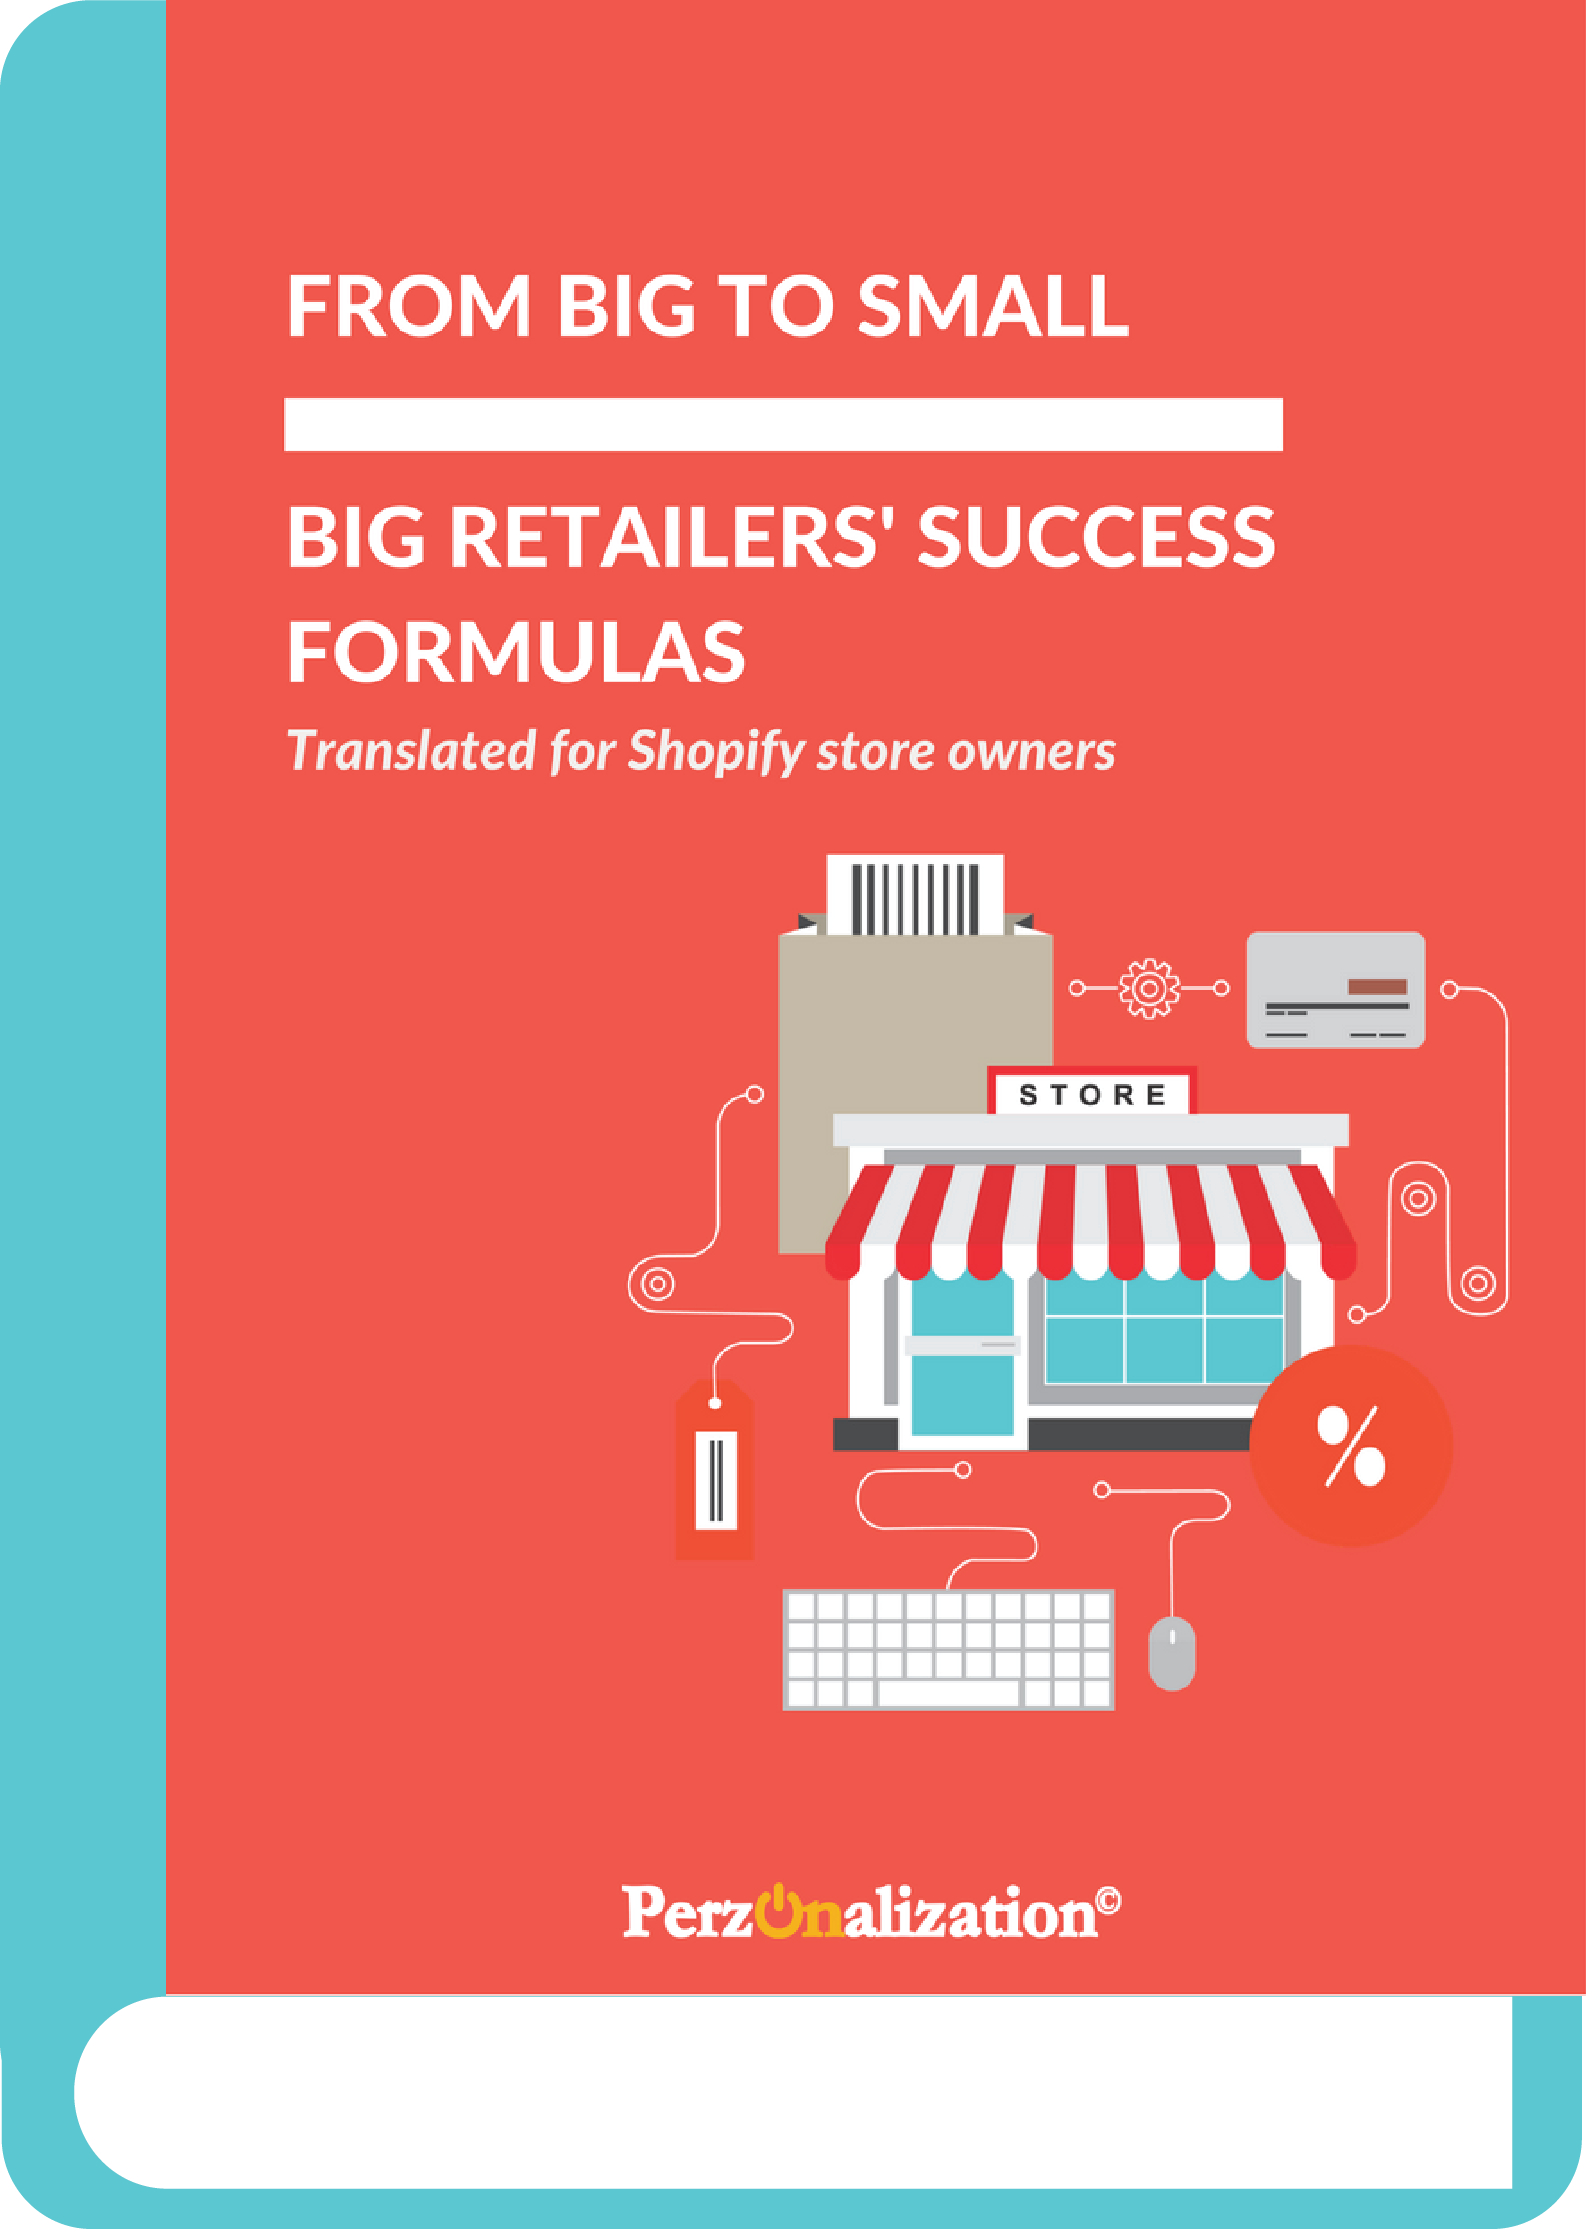 Big retailers were once small and with the help of effective strategies, they've managed to grow. This is an eBook for the Shopify store owners to get inspiration from the success stories of big players.